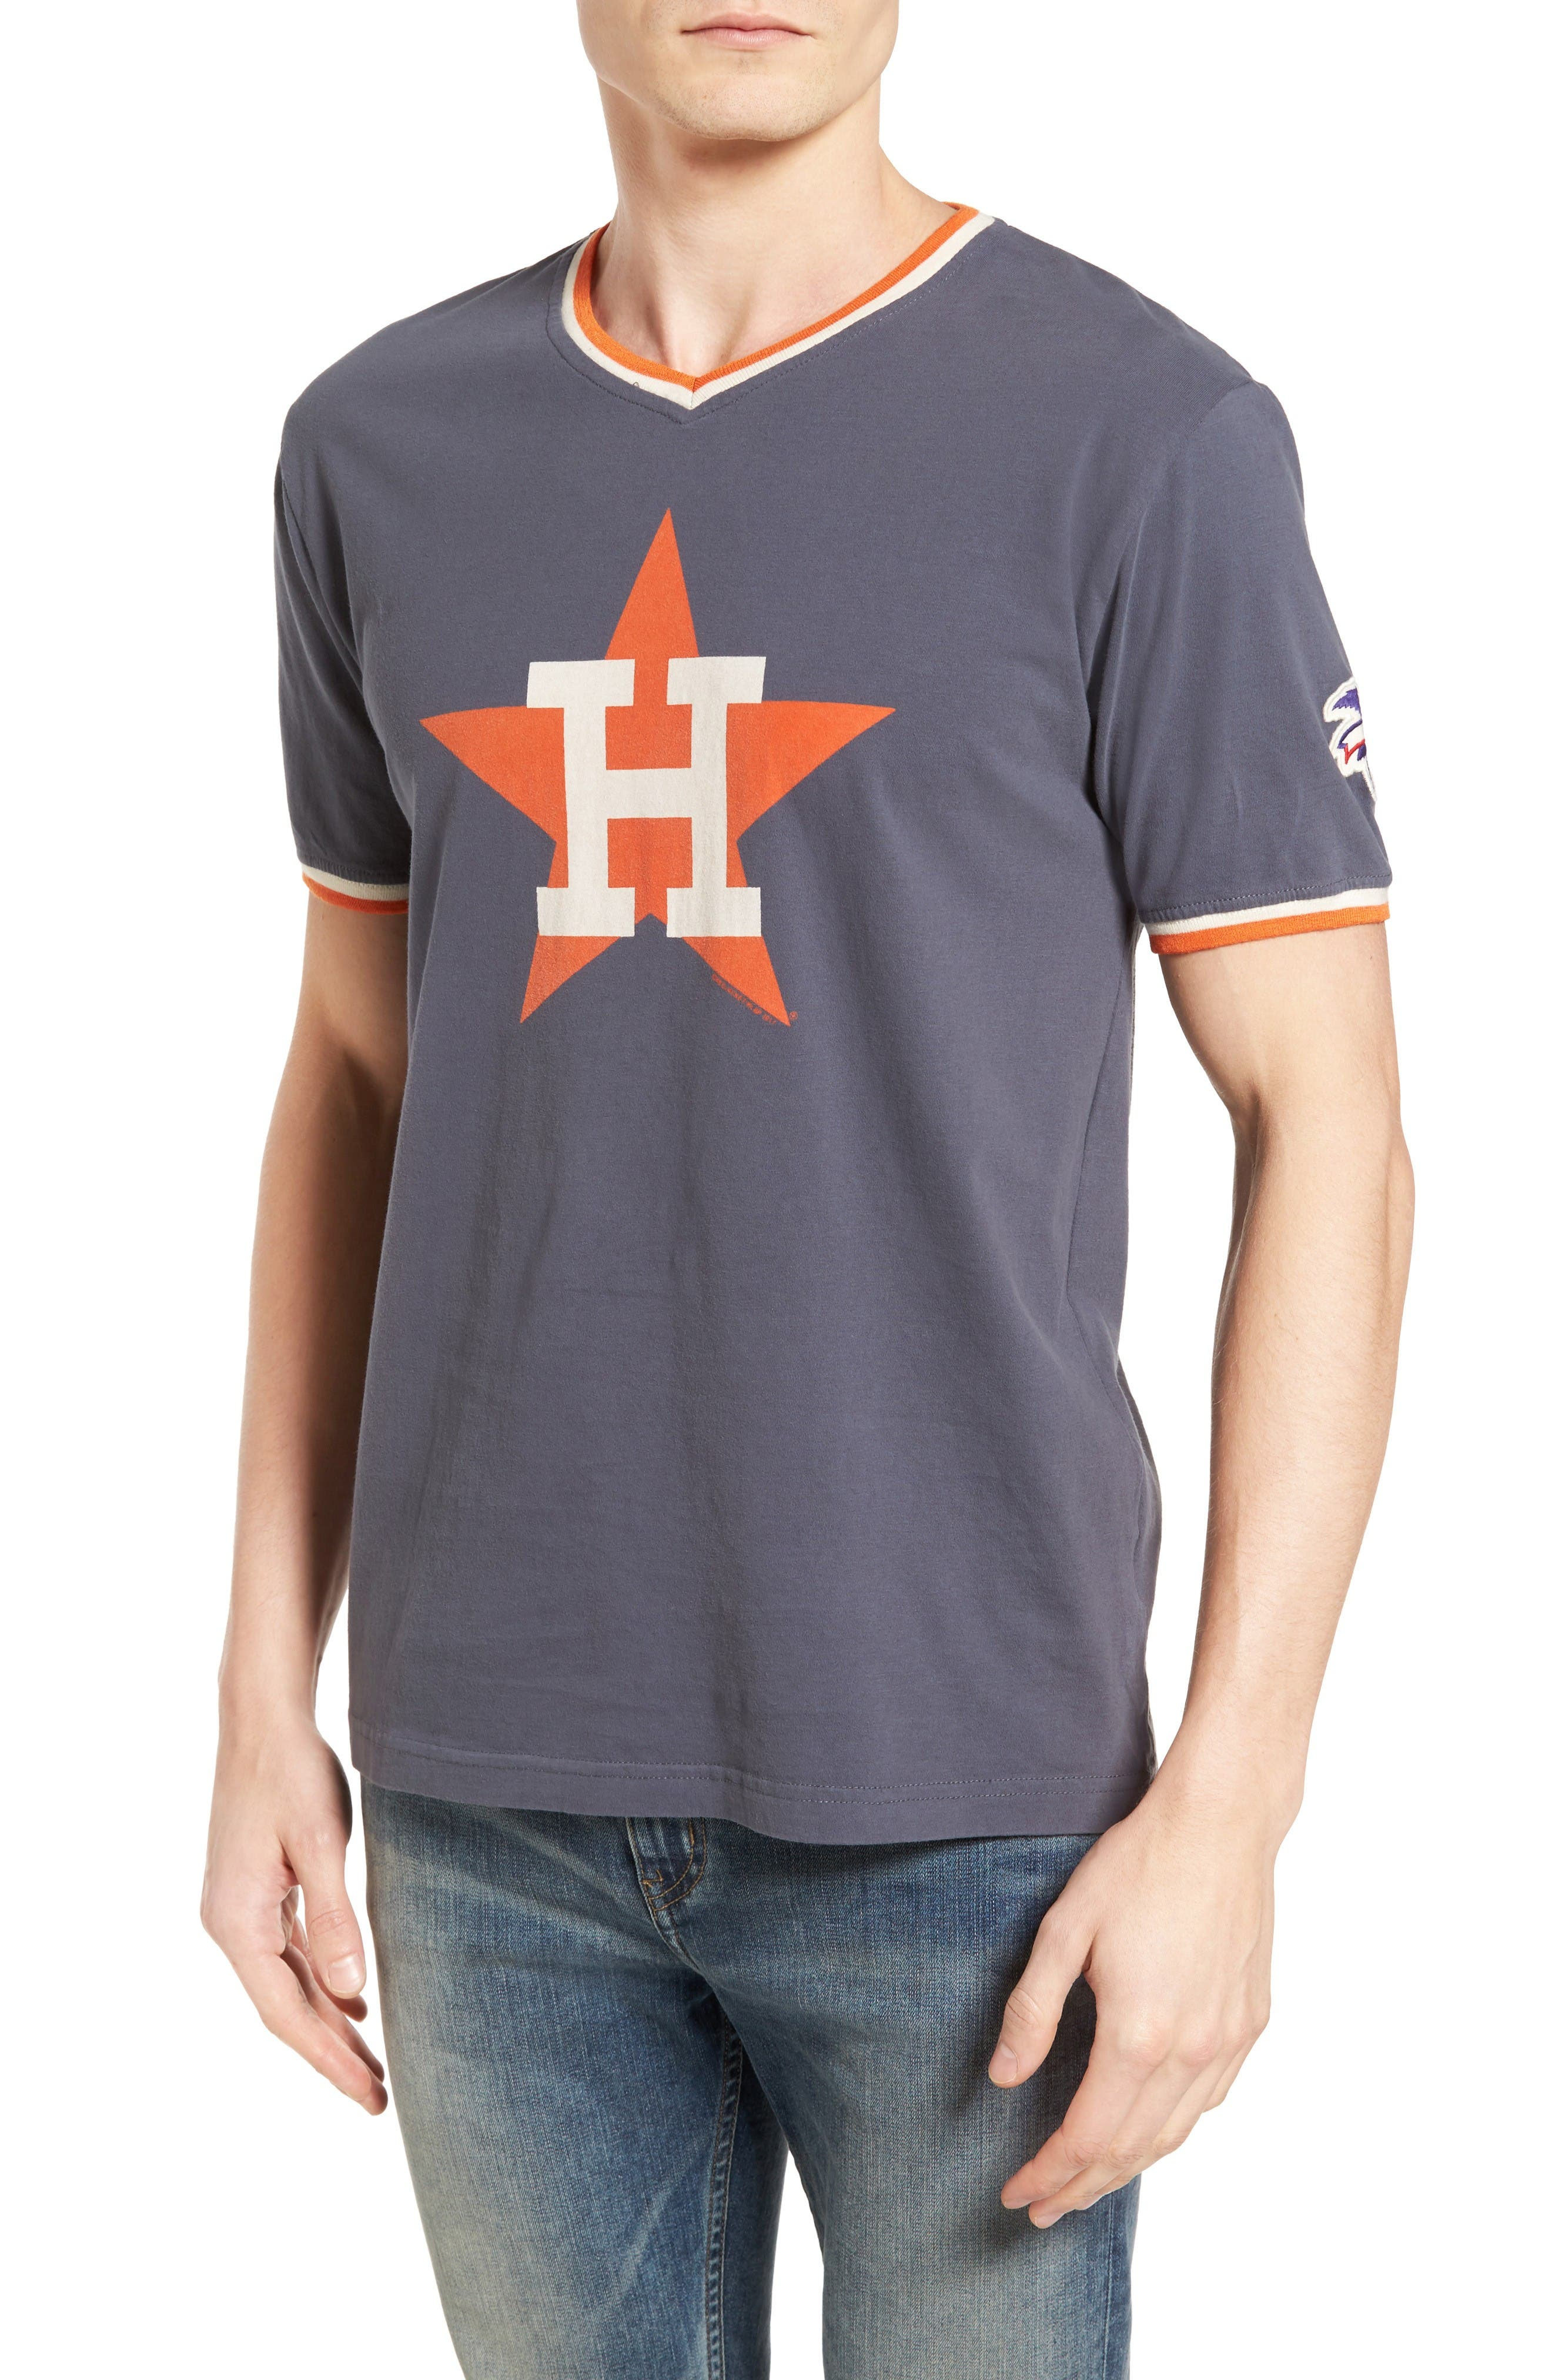 Main Image - American Needle Eastwood Houston Astros T-Shirt